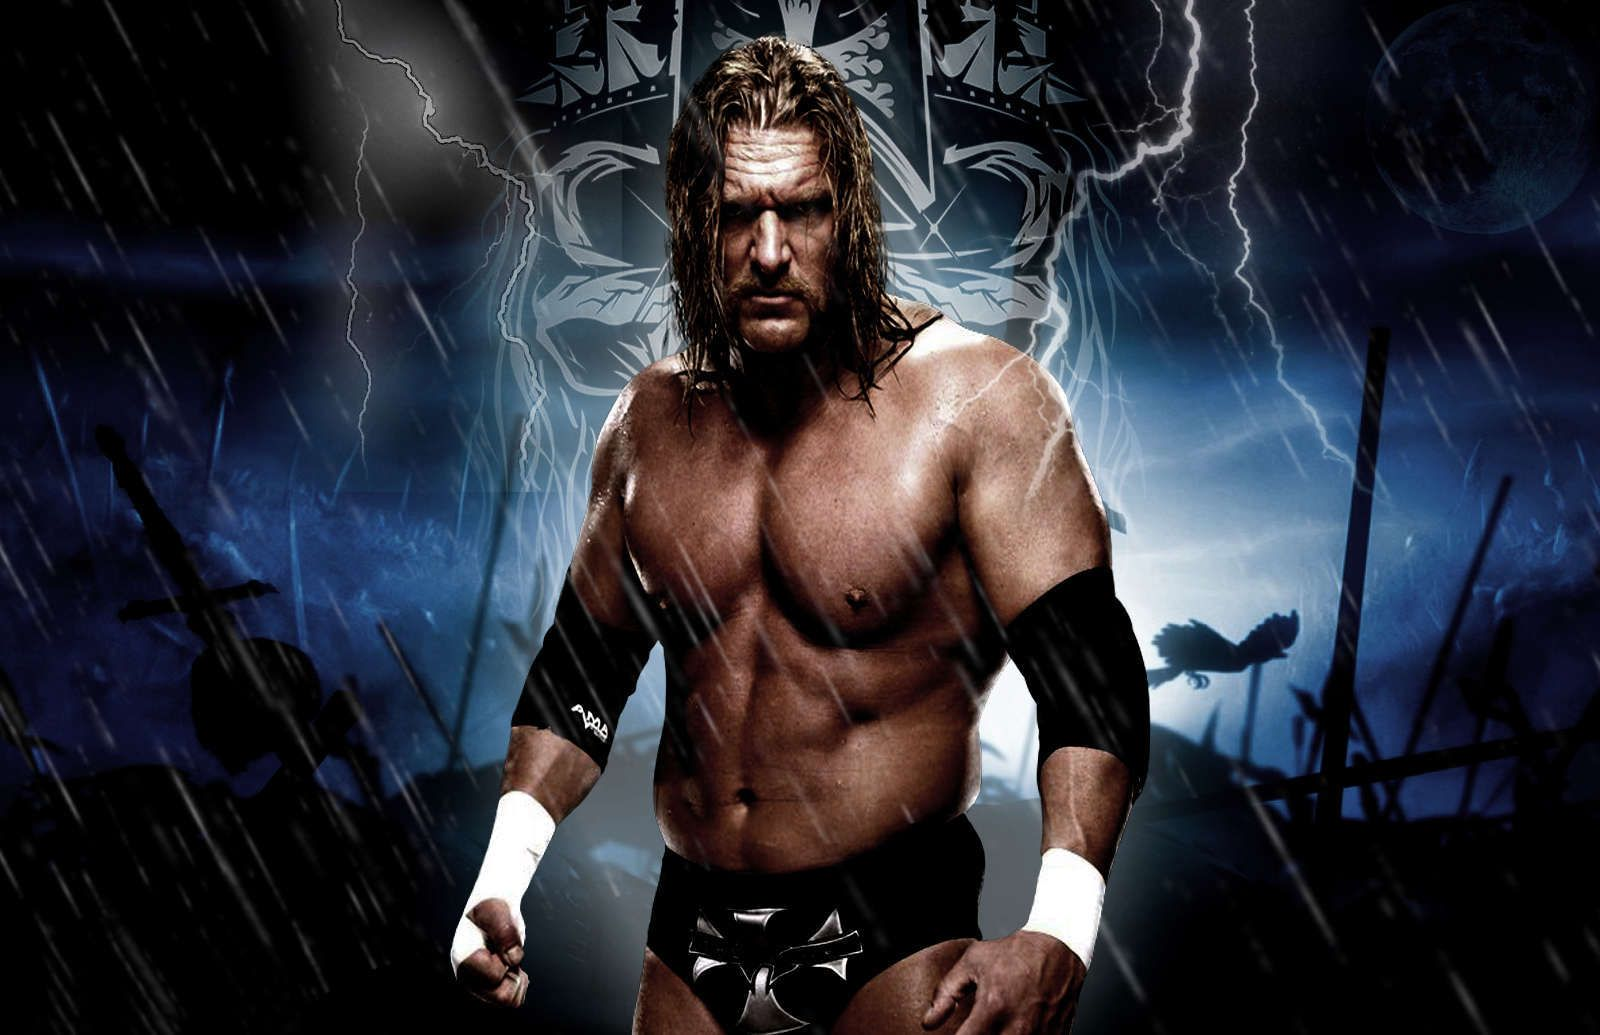 triple h the game wallpaper on bet